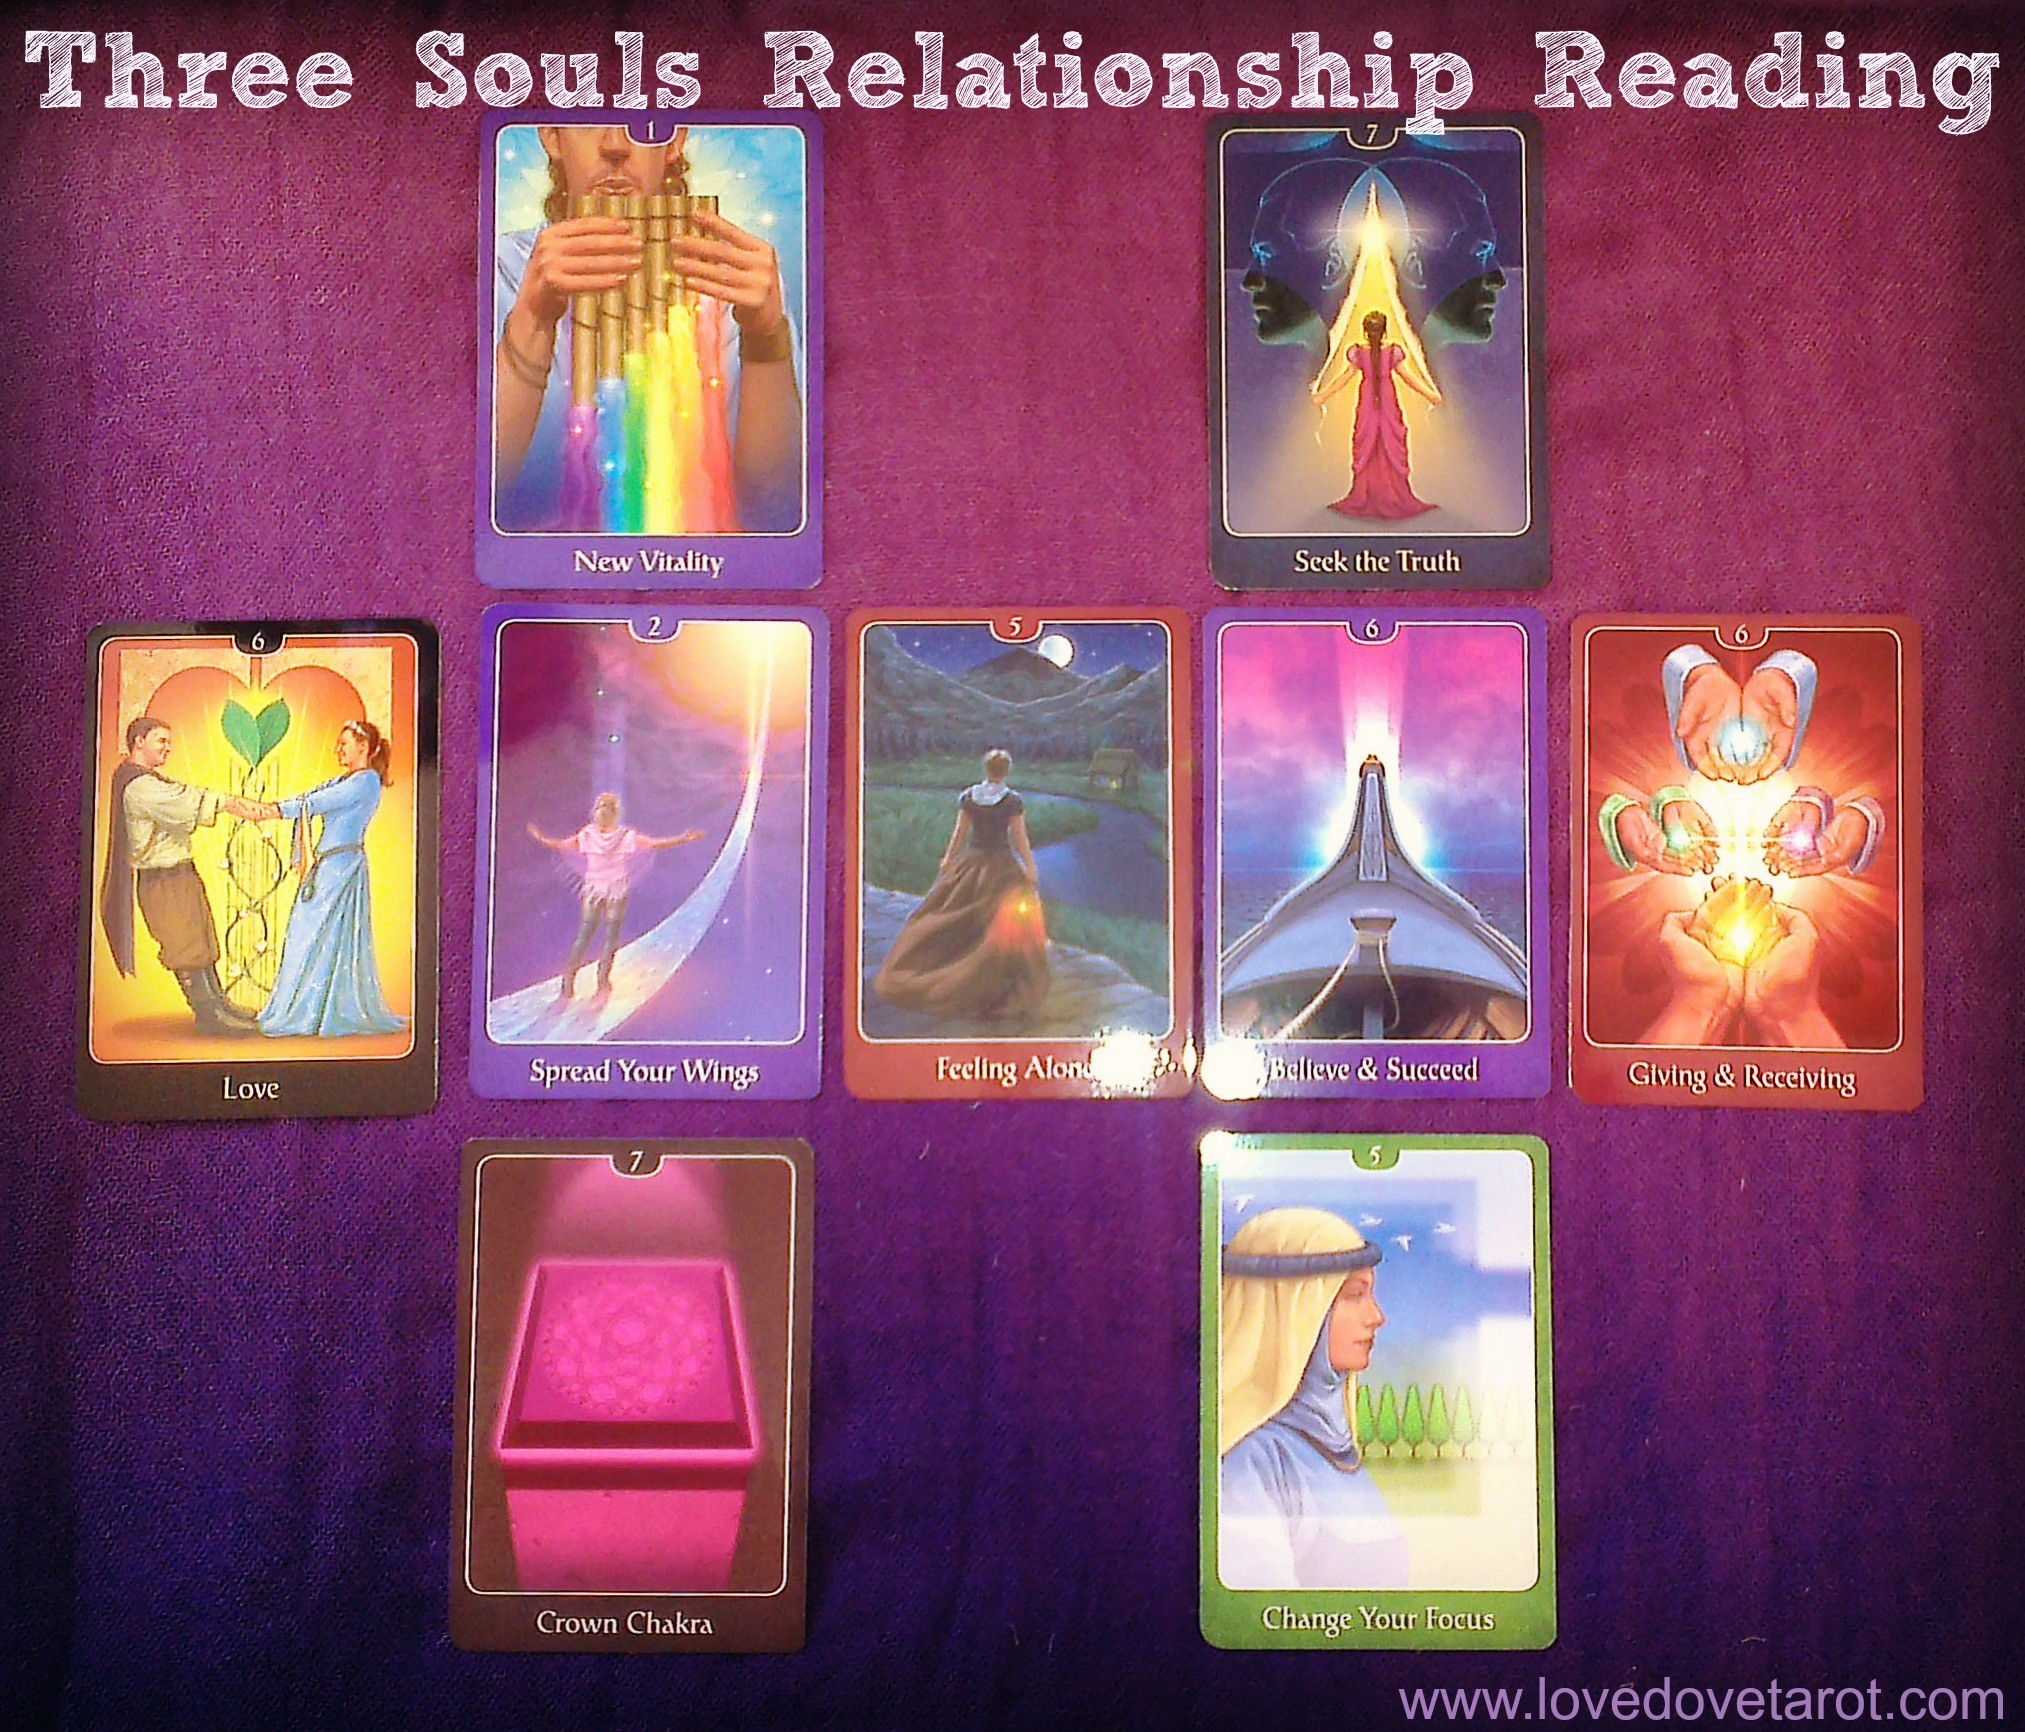 Three Souls Relationship Reading